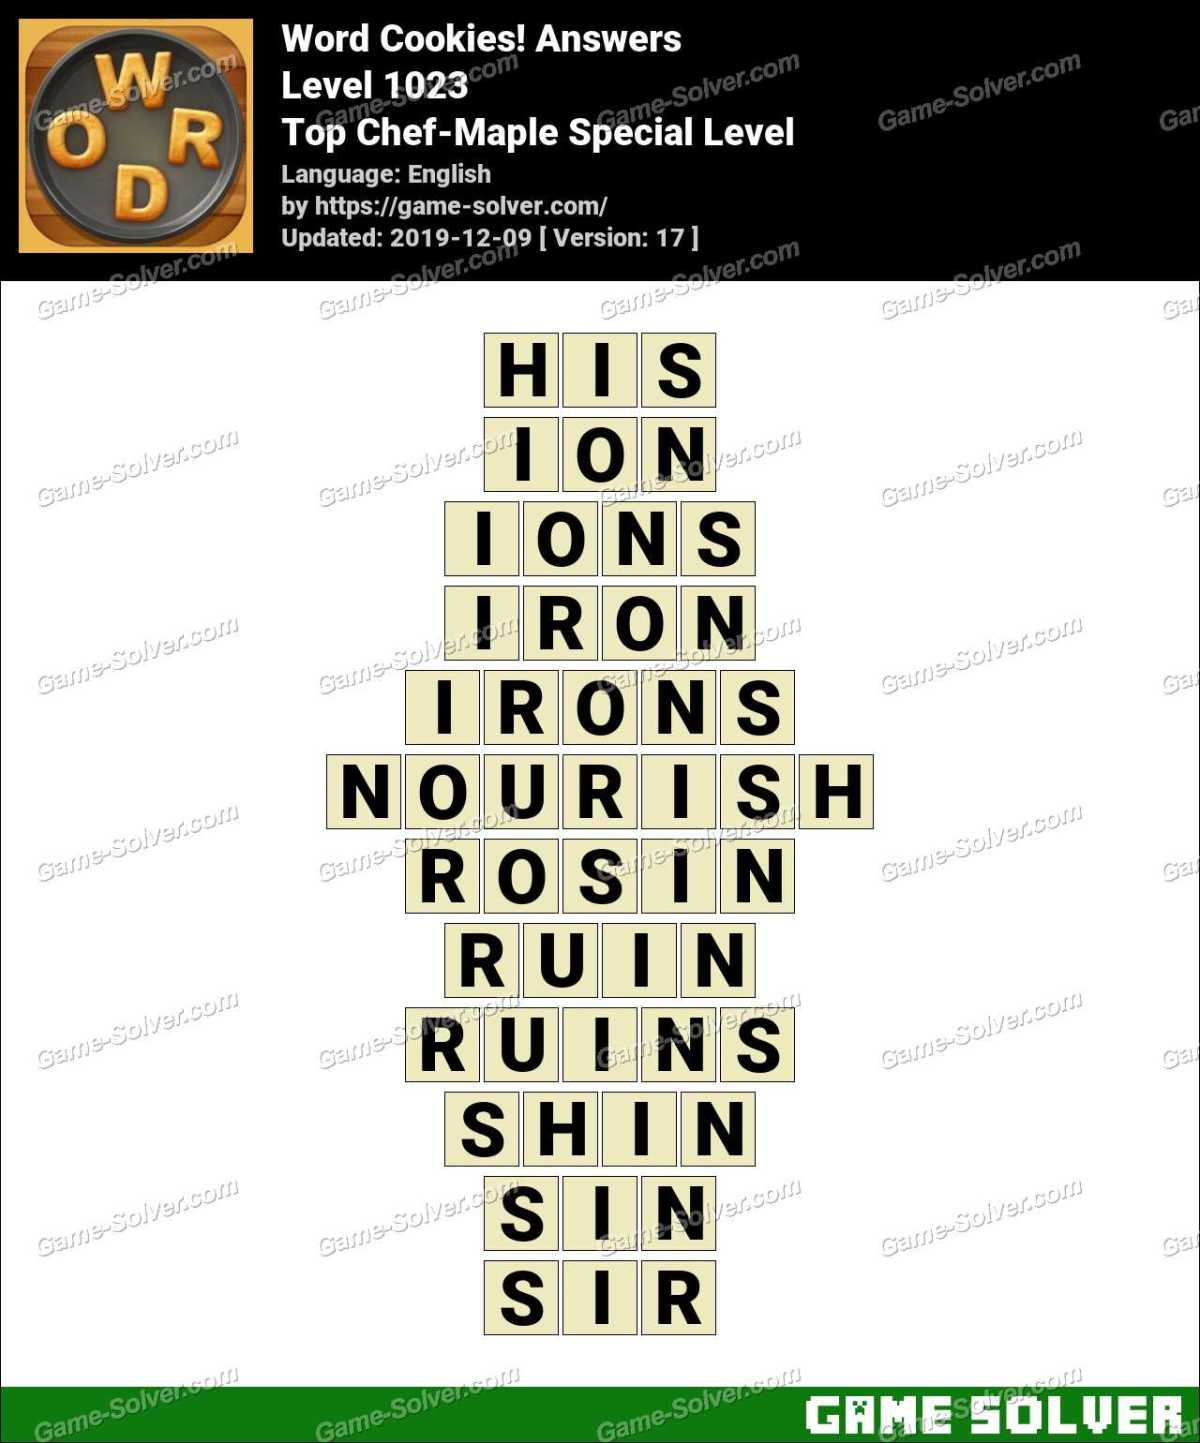 Word Cookies Top Chef-Maple Special Level Answers